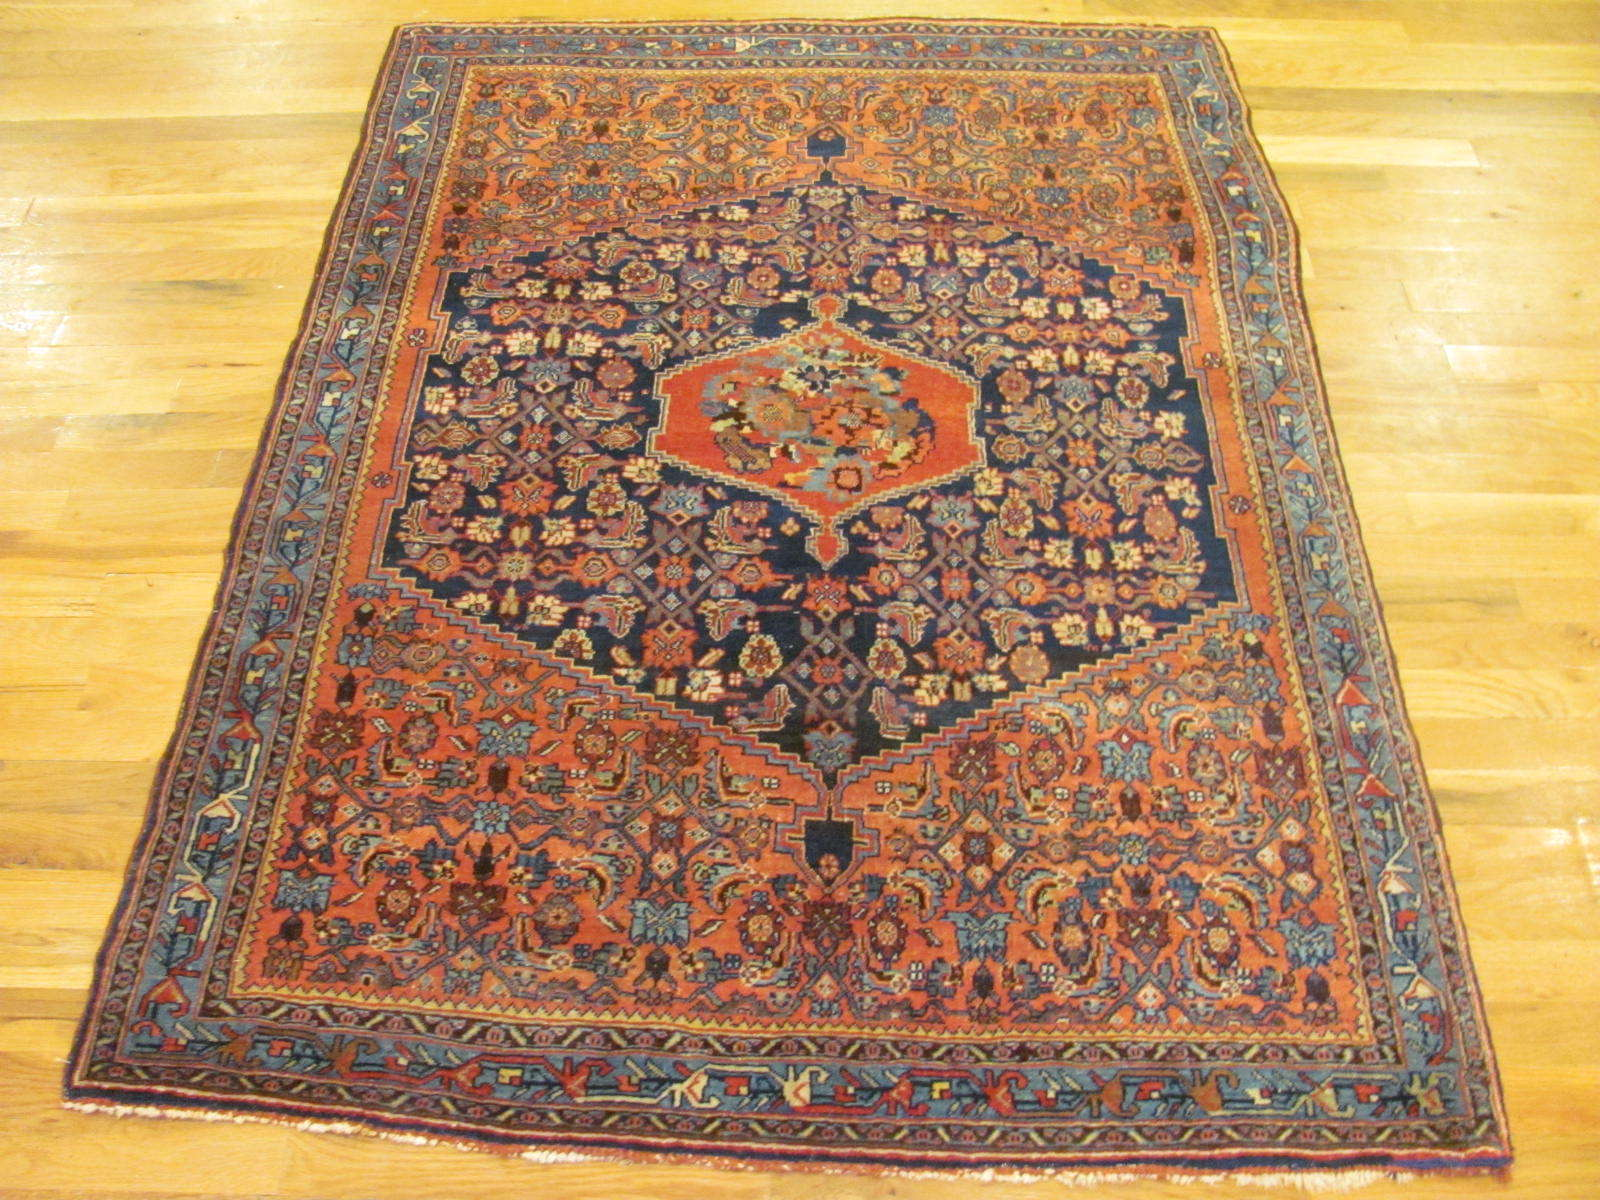 25091 antique persian bidjar rug 3,10x5,5